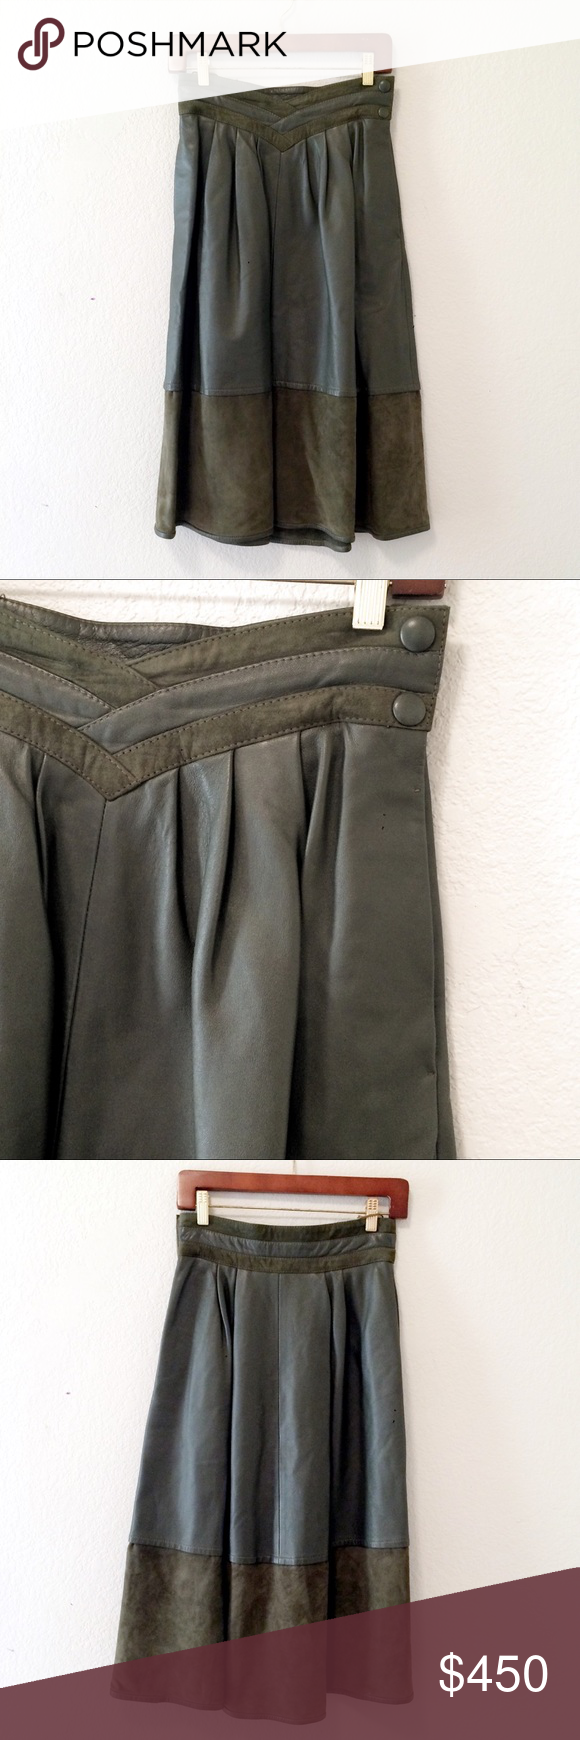 e518bad767 YSL Vintage green leather suede Midi skirt YSL Yves Saint Laurent Green leather  skirt high waist